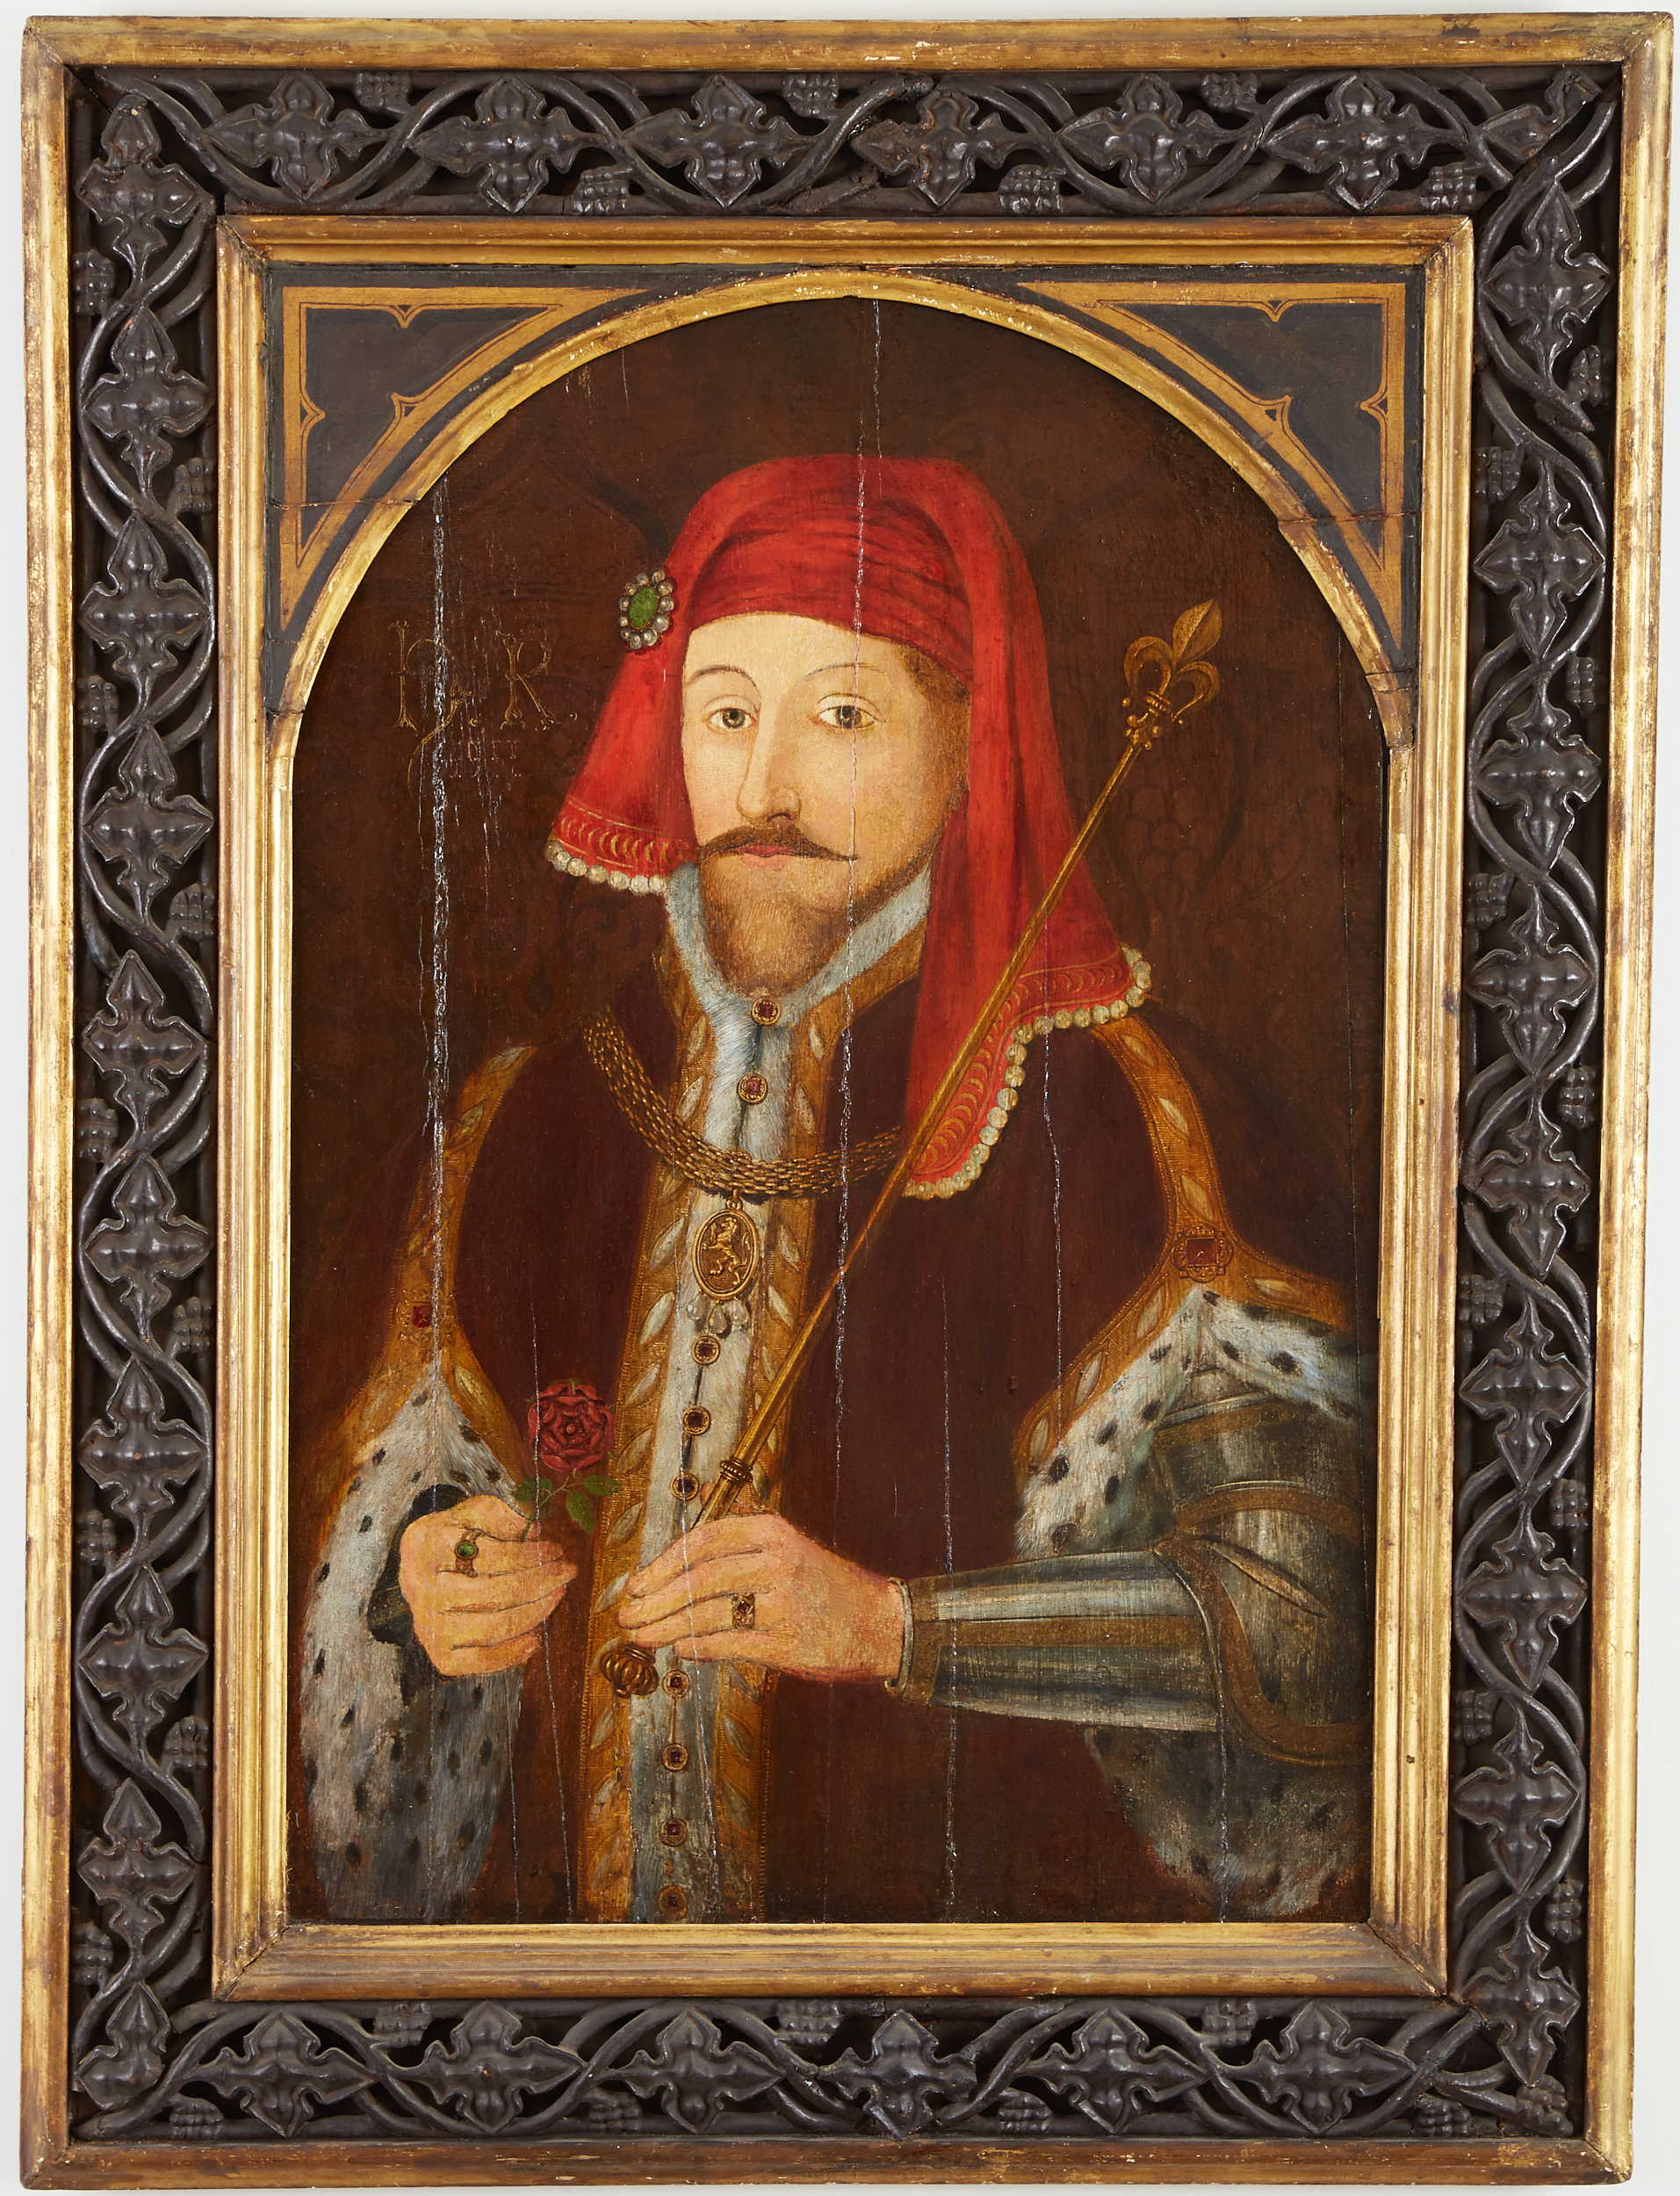 Lot 13 - 17th century English School Portrait Painting of Henry IV Oil on Panel